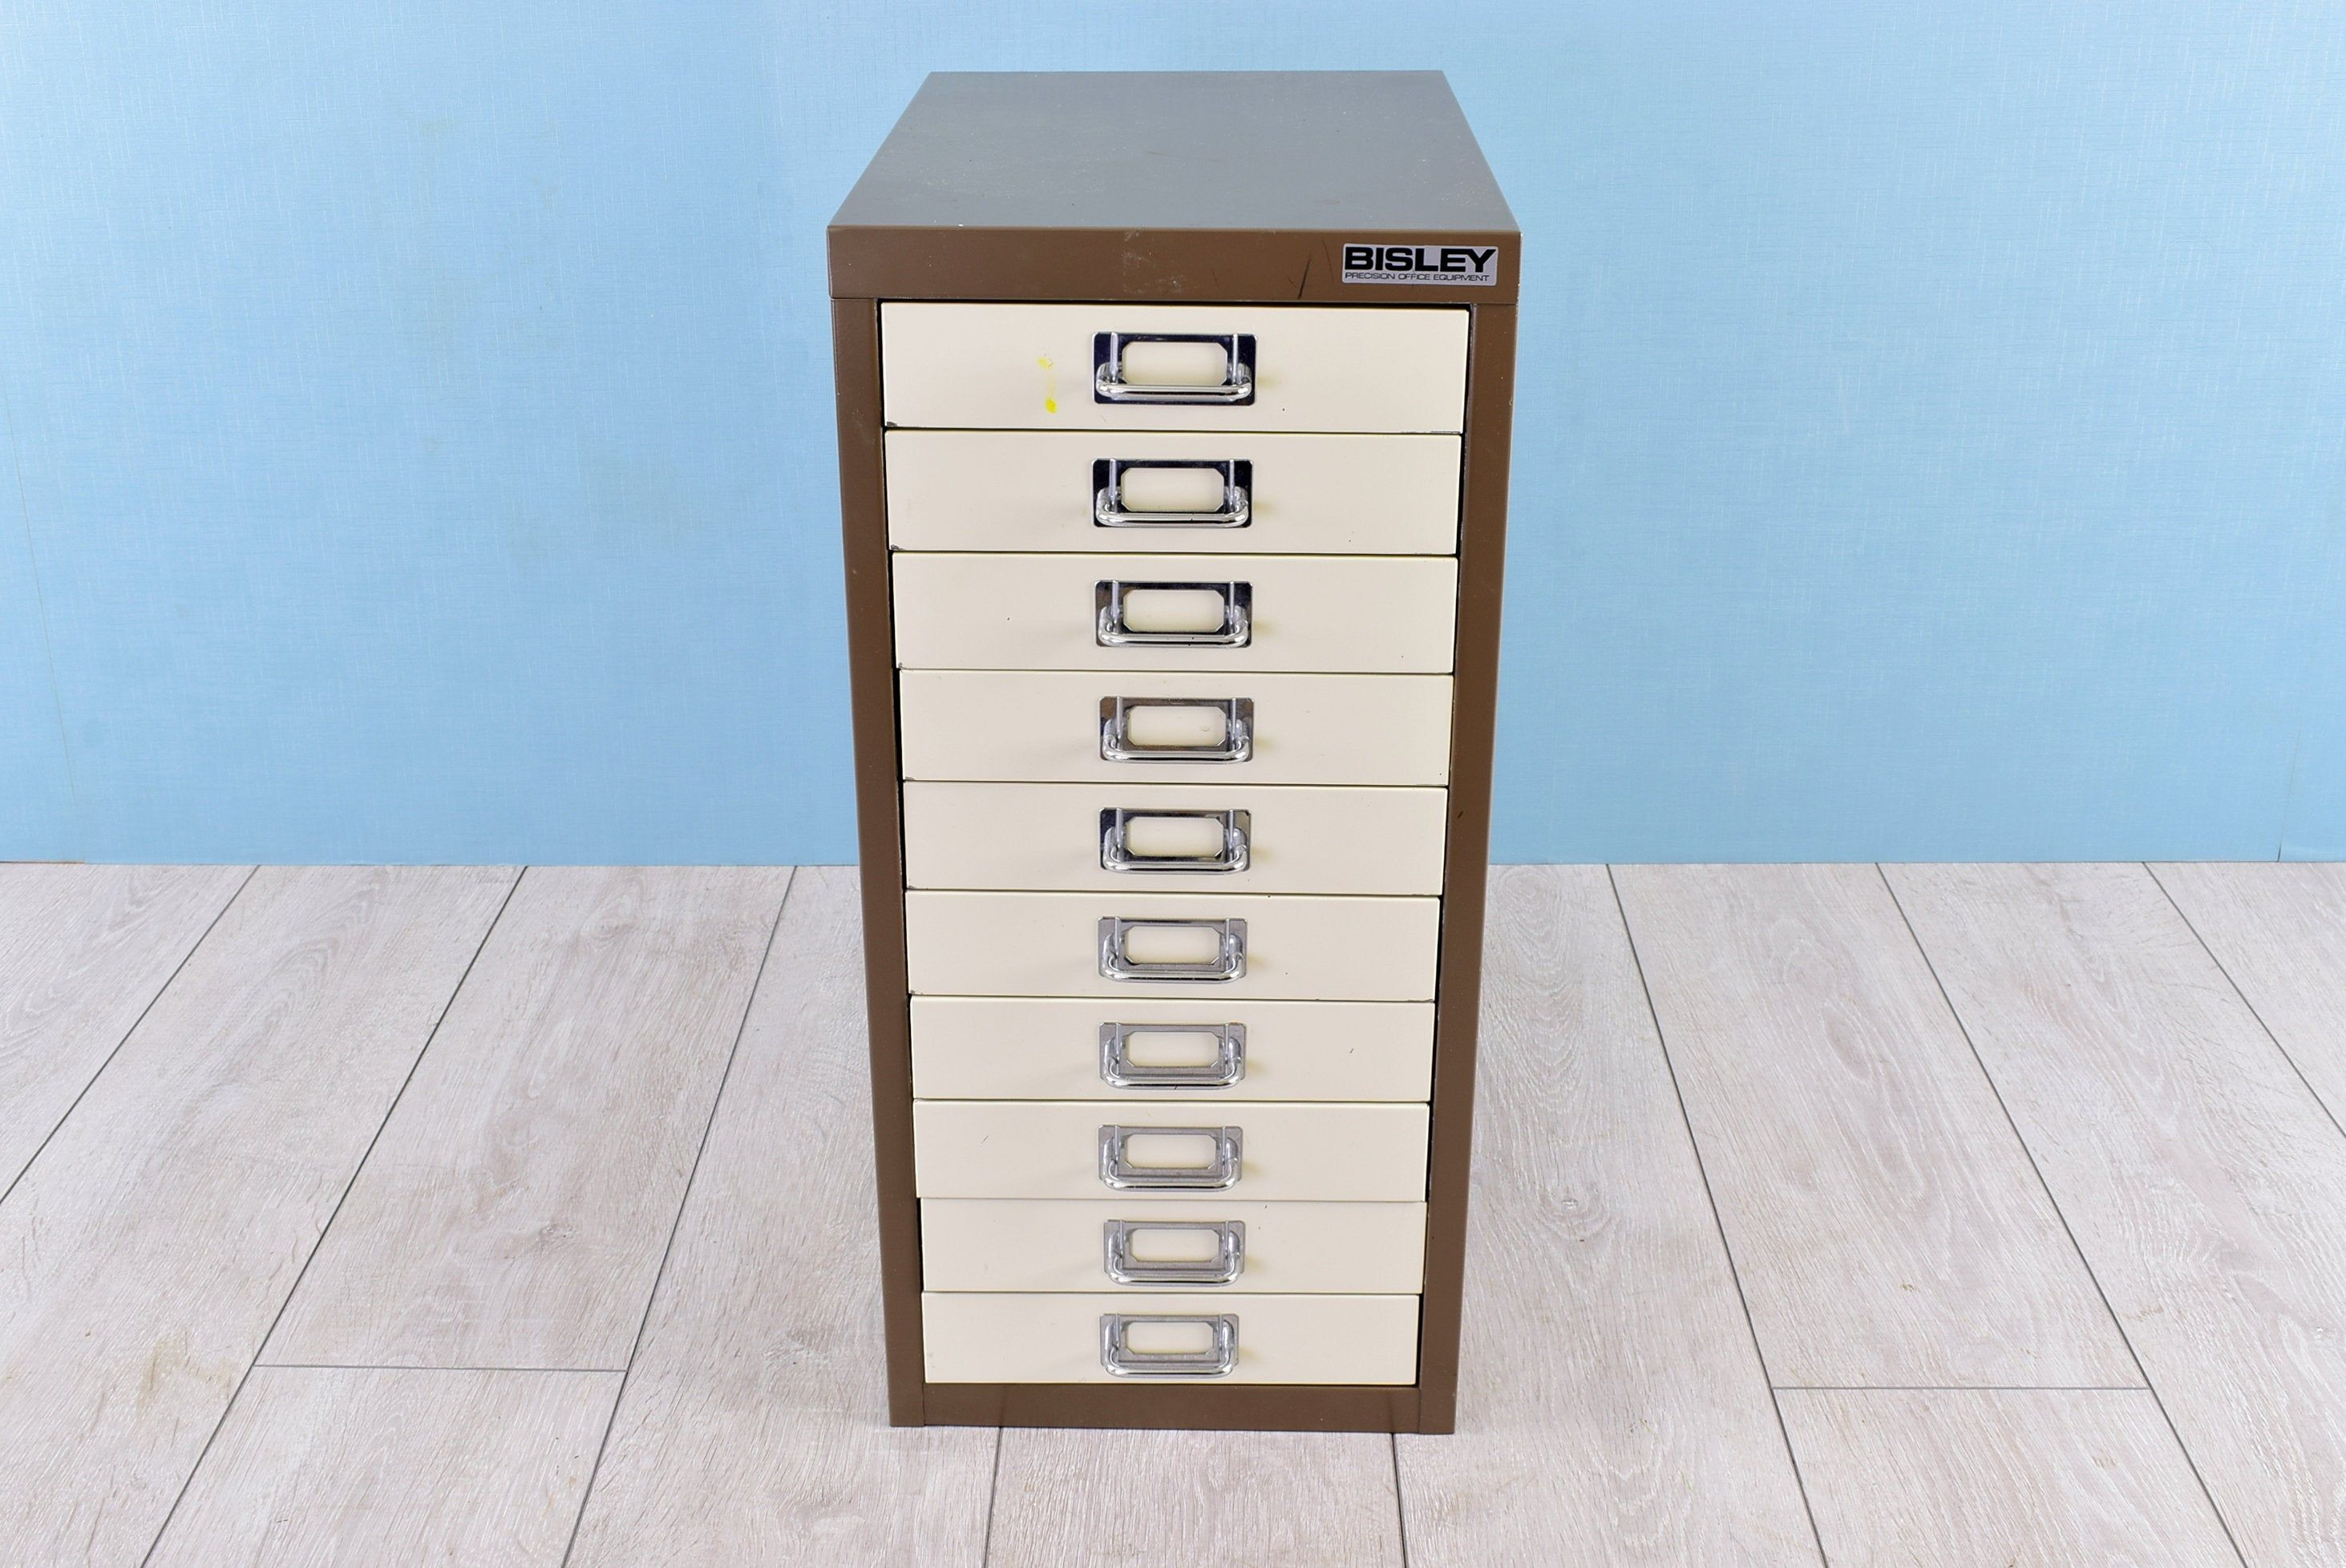 Retro Bisley Filing Cabinet Metal Desktop Organizer Tiered Office Box With 10 Drawers Vintage Industrial Home Desk Accessory Uk 1970s Filing Cabinet Desktop Organization Desk Accessories